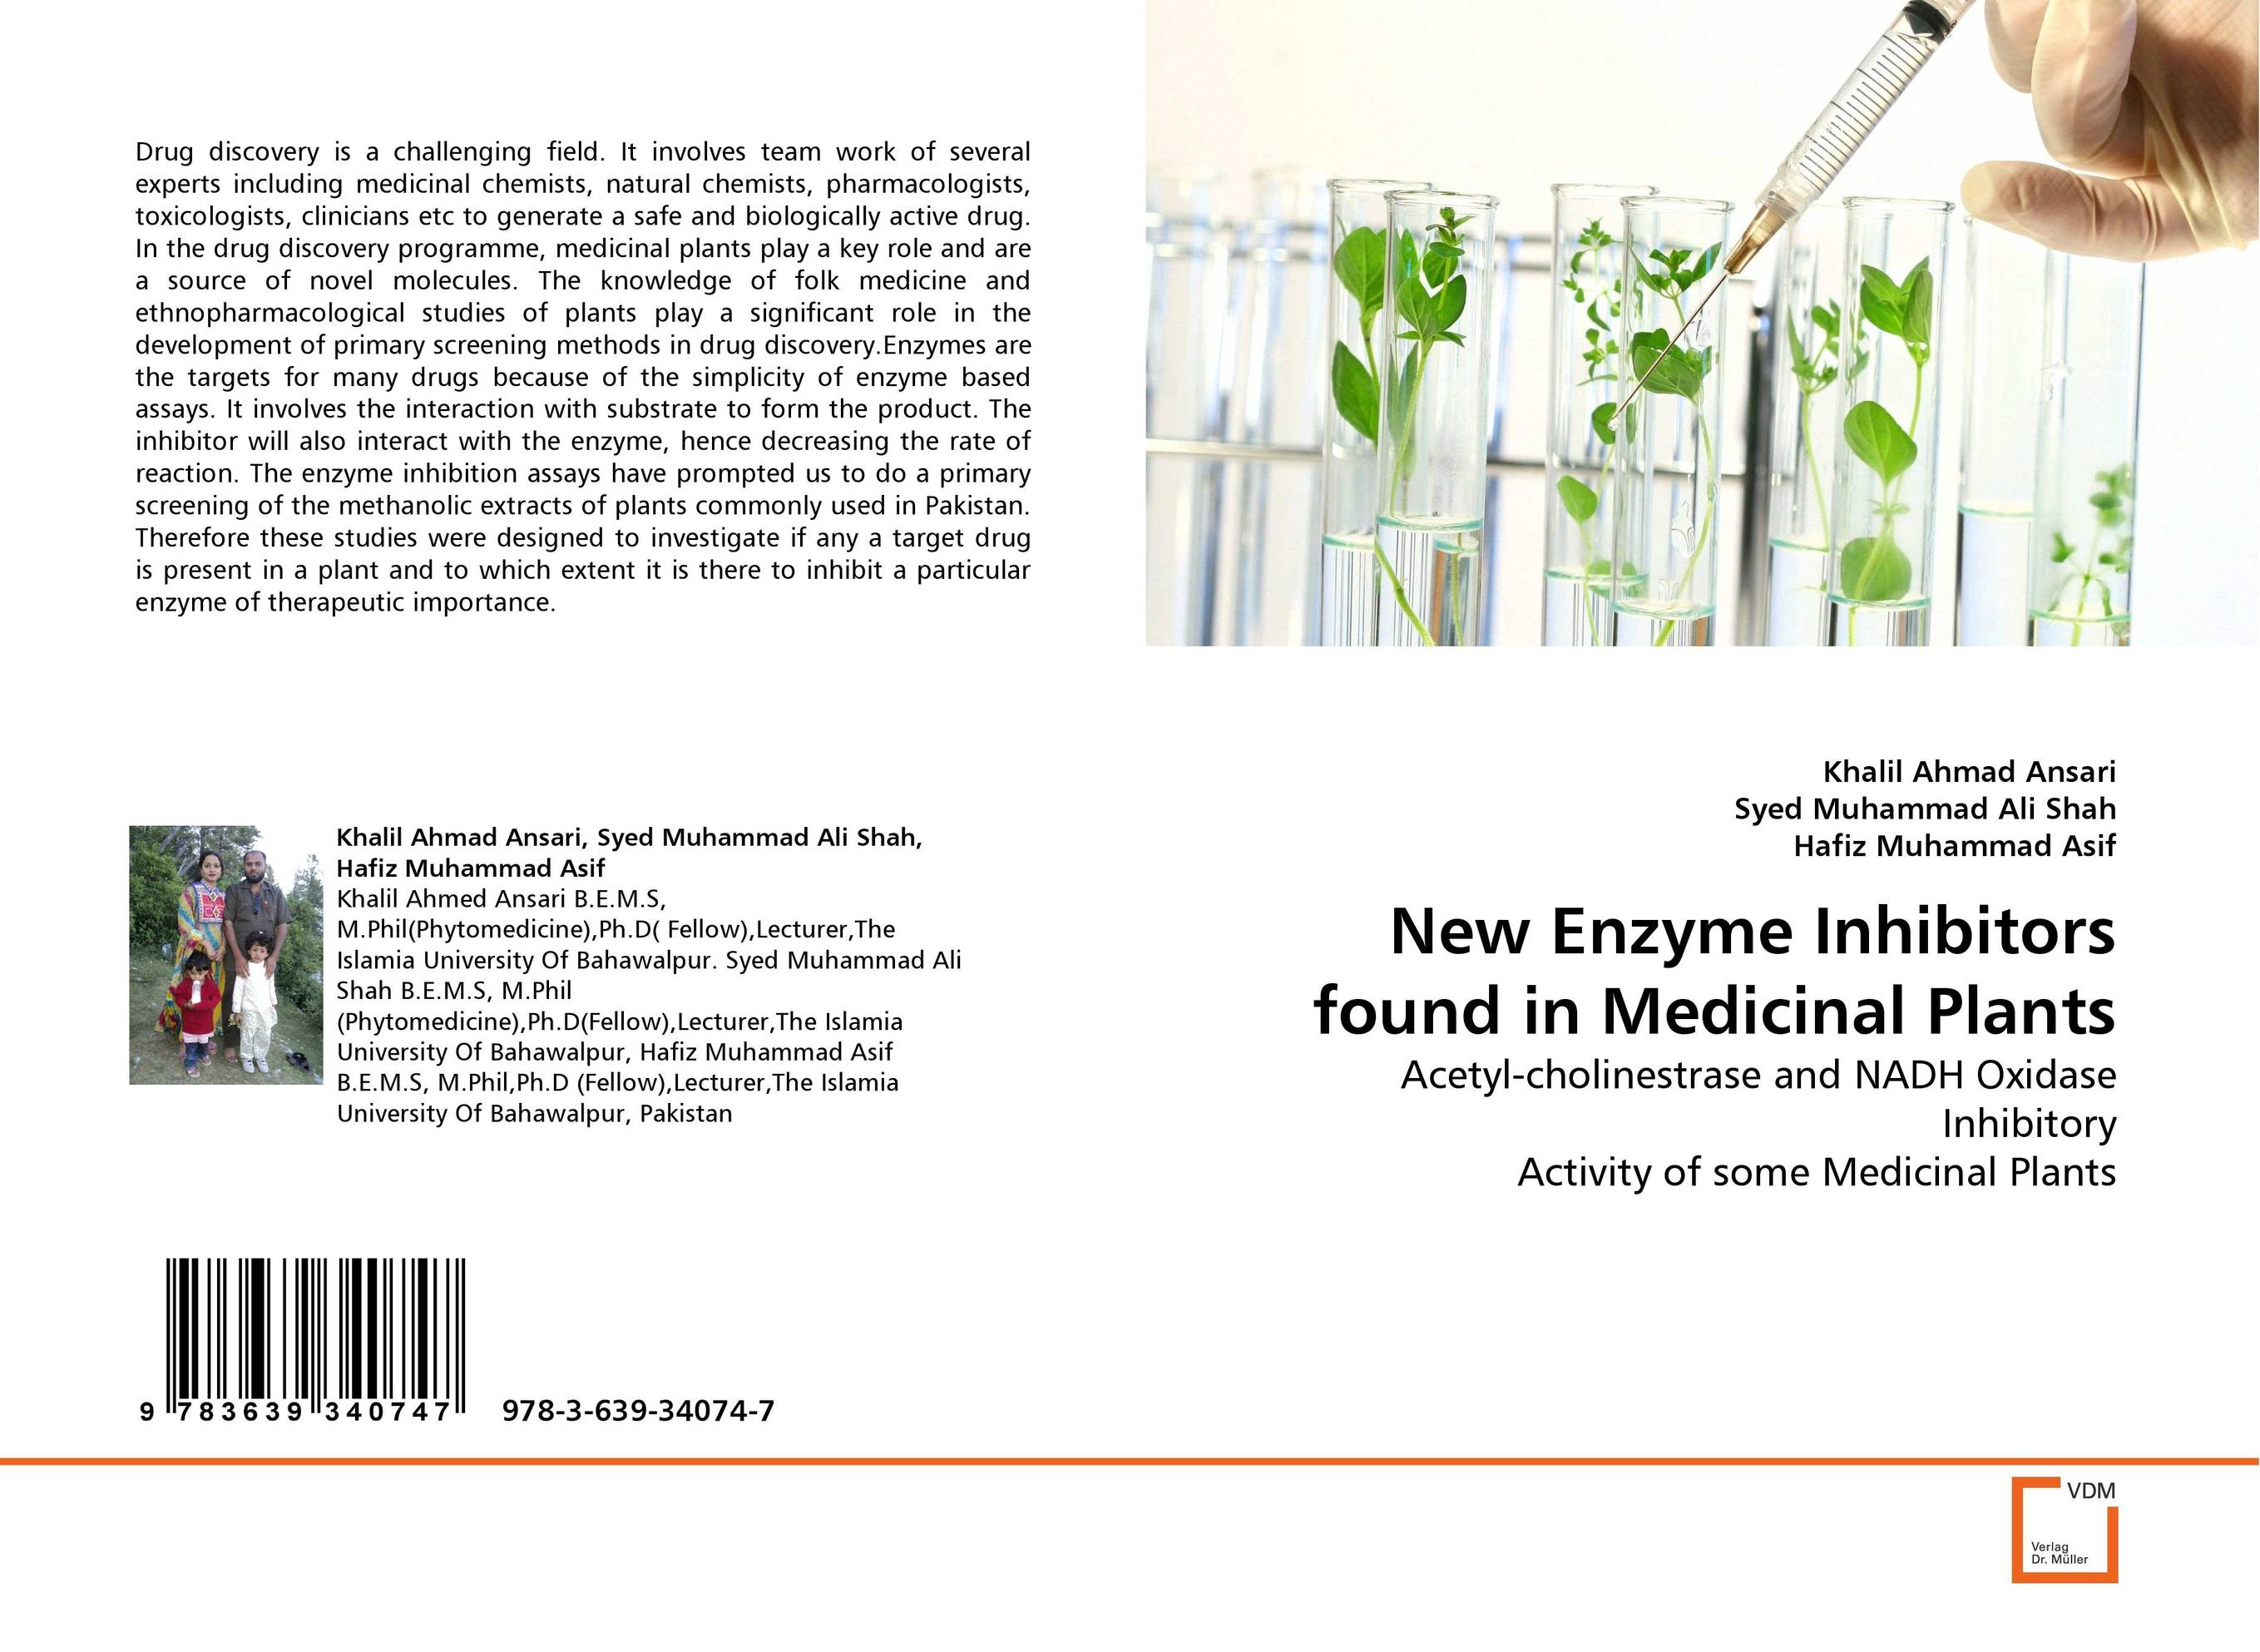 New Enzyme Inhibitors found in Medicinal Plants drug discovery and design